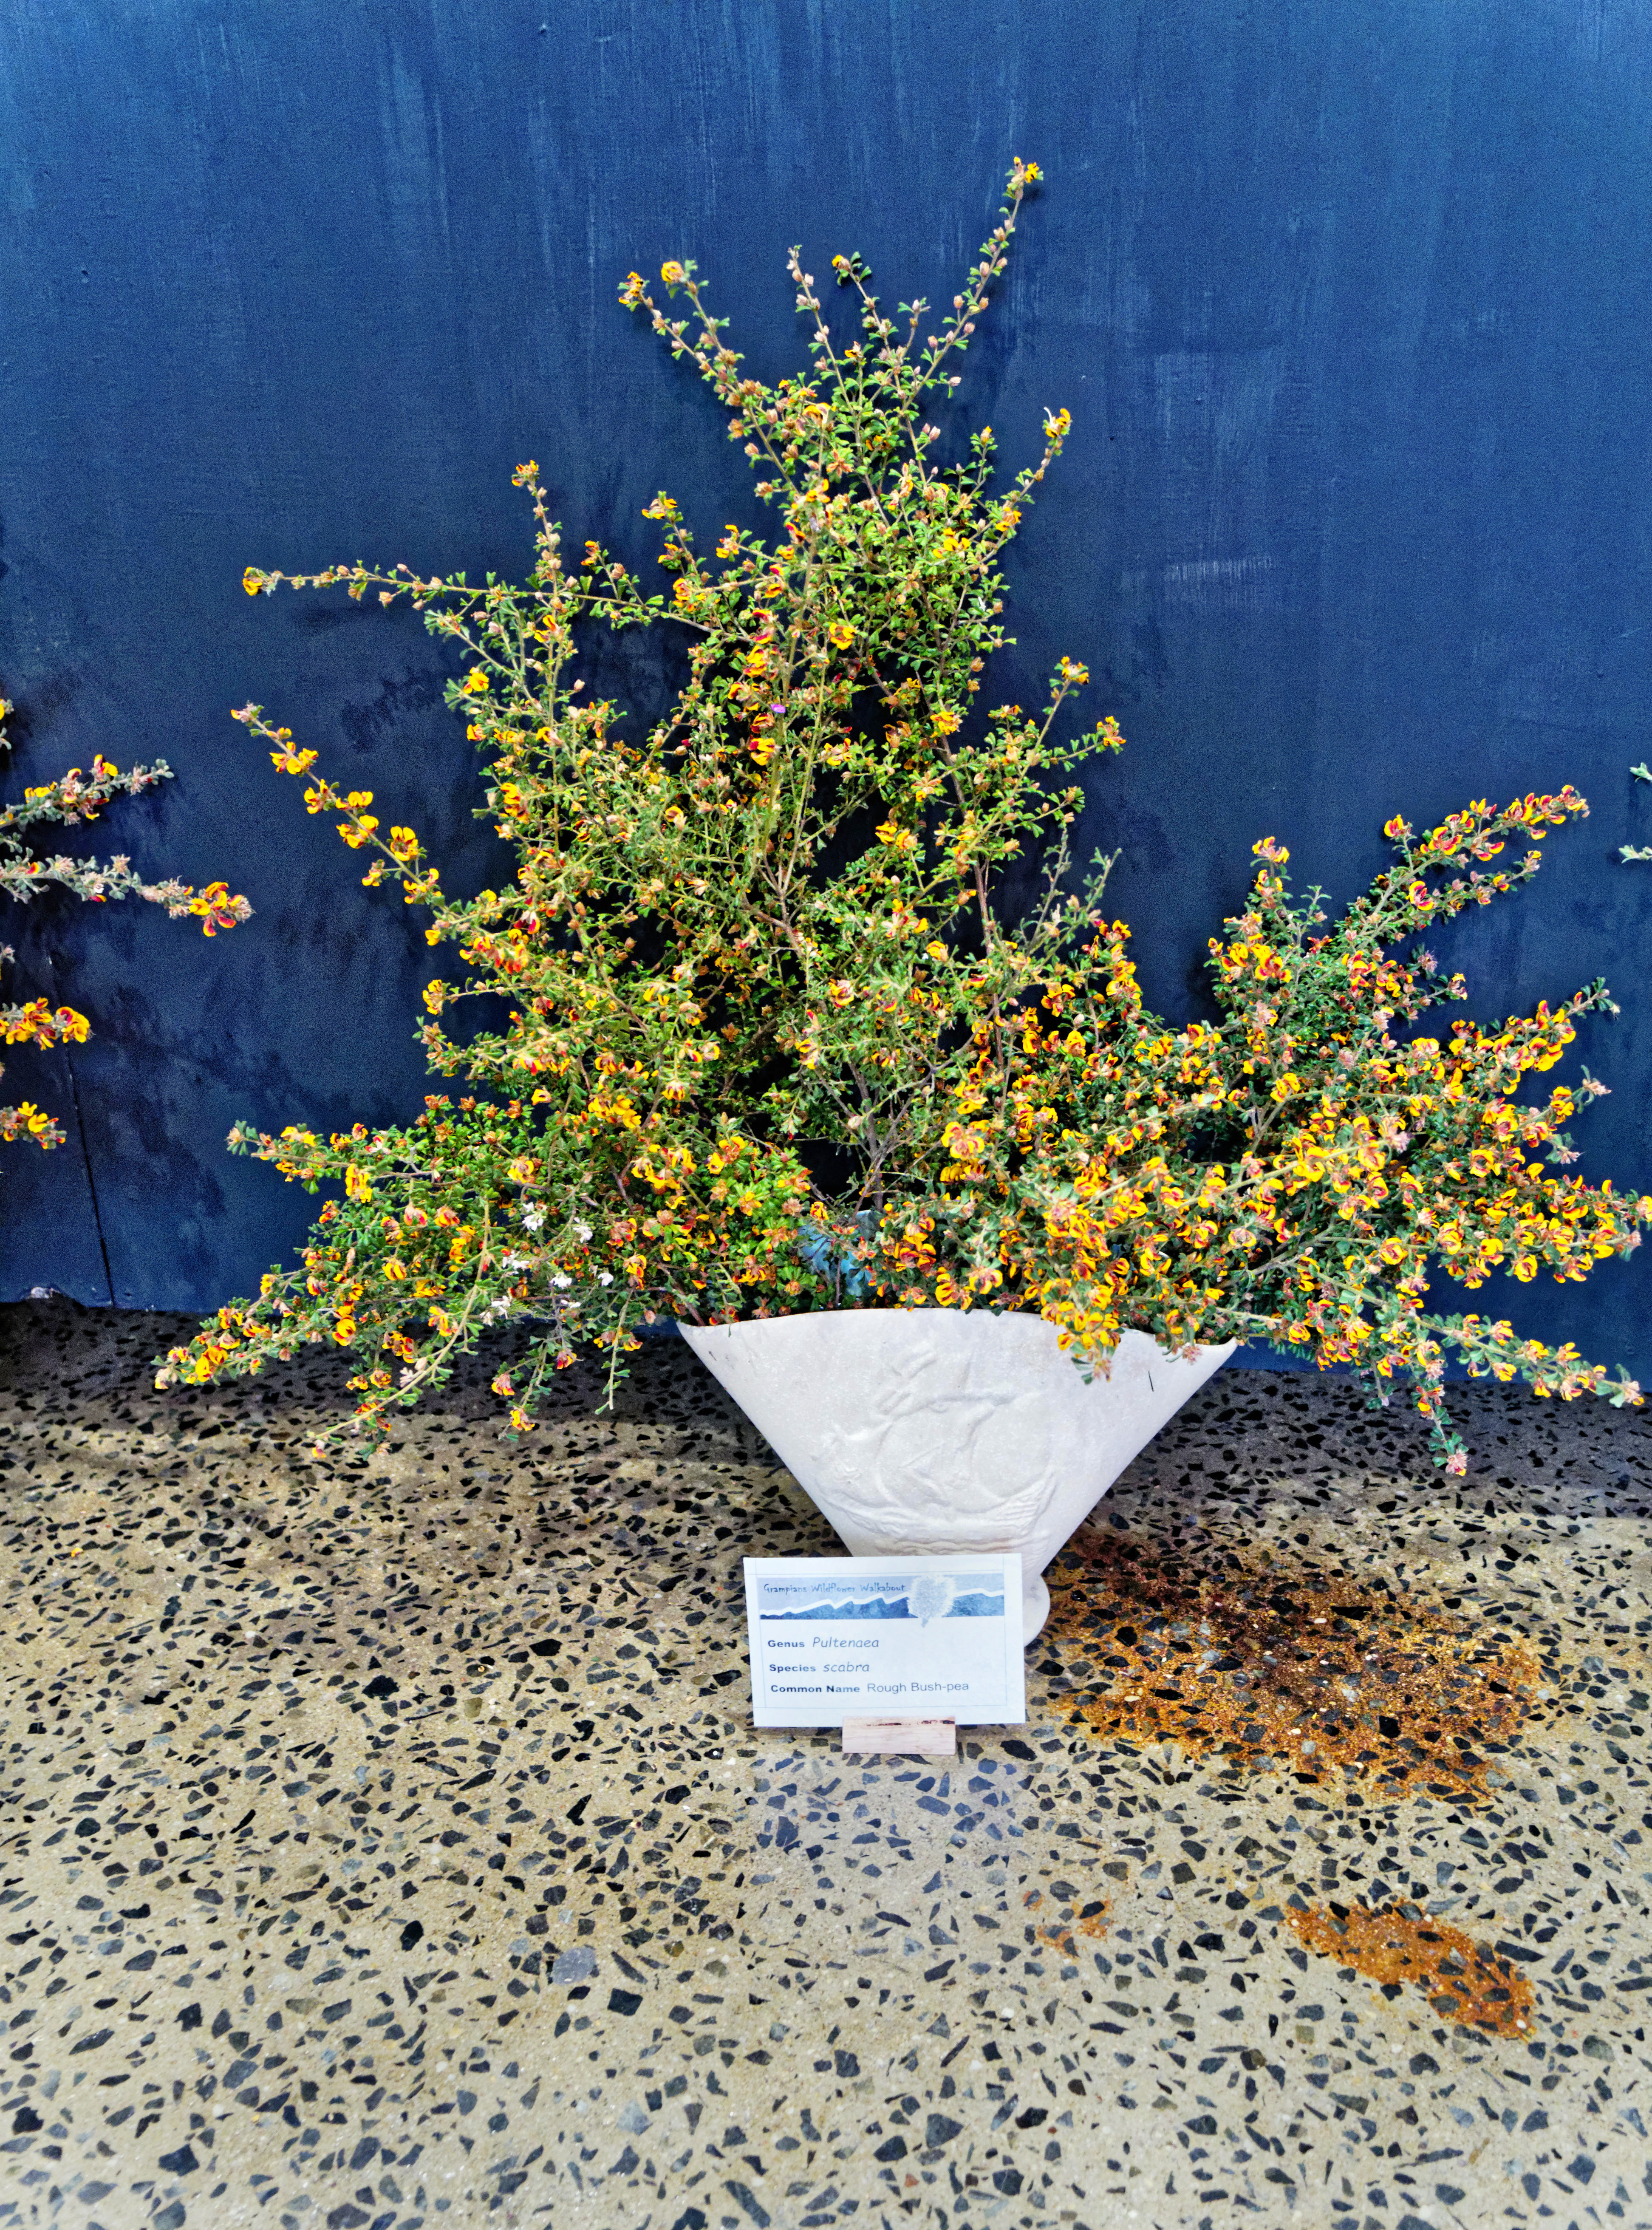 This should be Pultenaea-scabra-3.jpeg.  Is it missing?